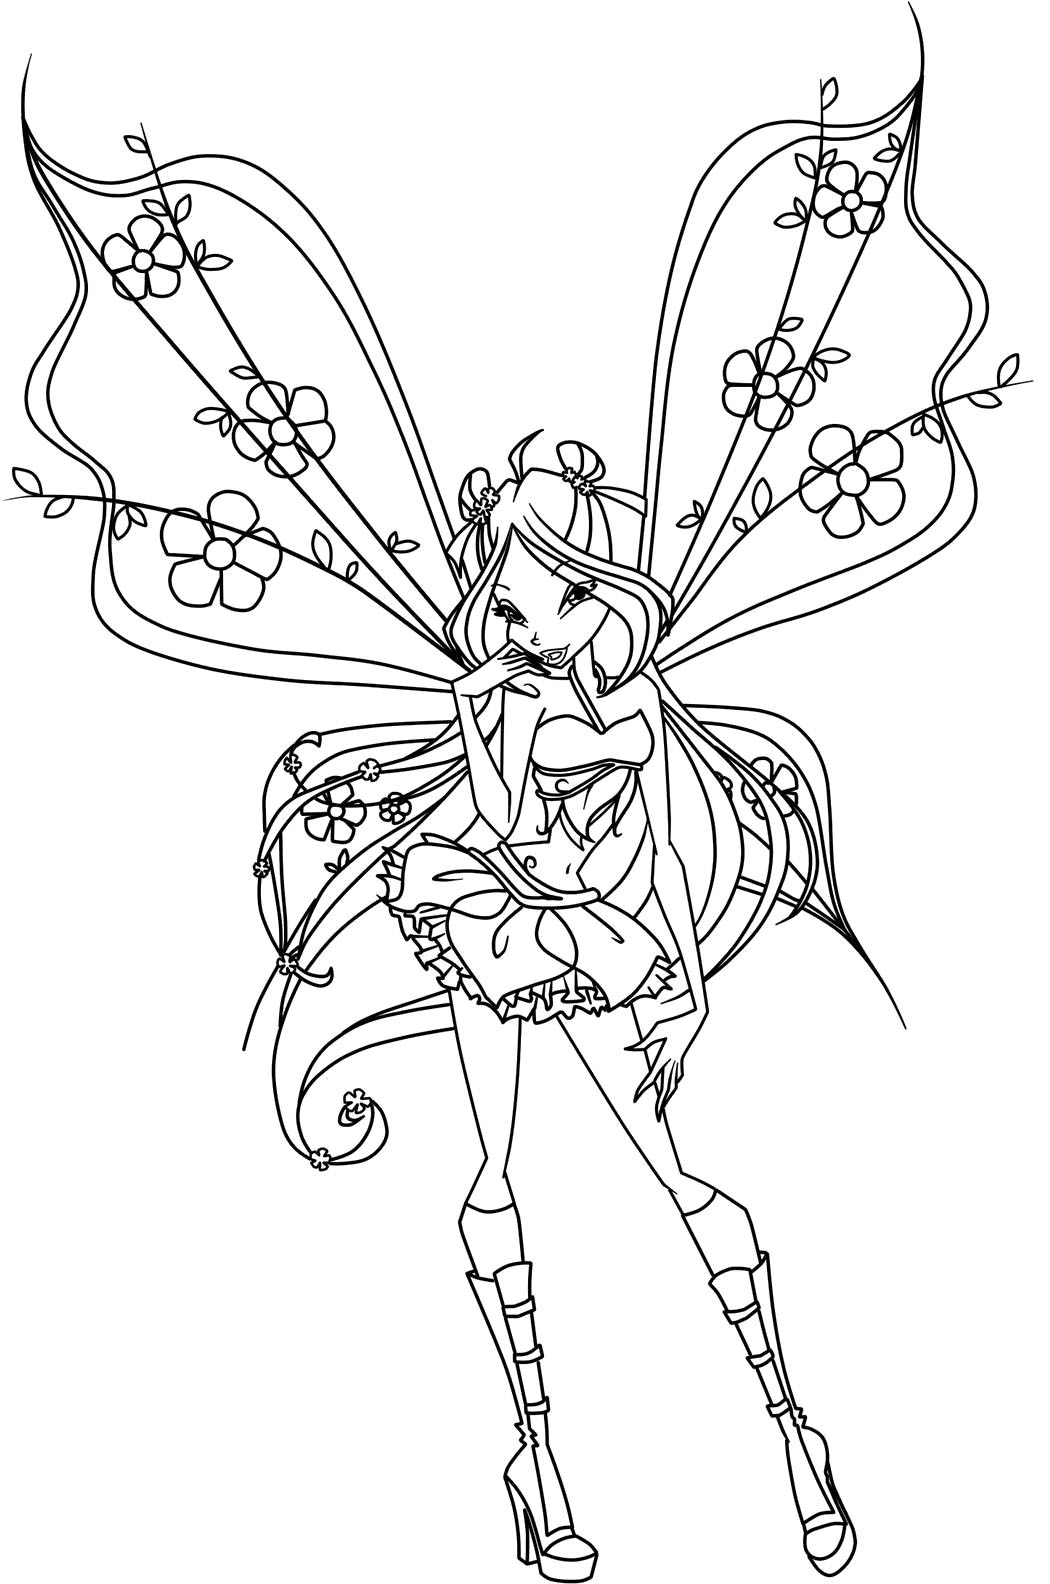 Adult Beauty Winx Coloring Page Images beauty winx coloring pages to download and print for free gallery images